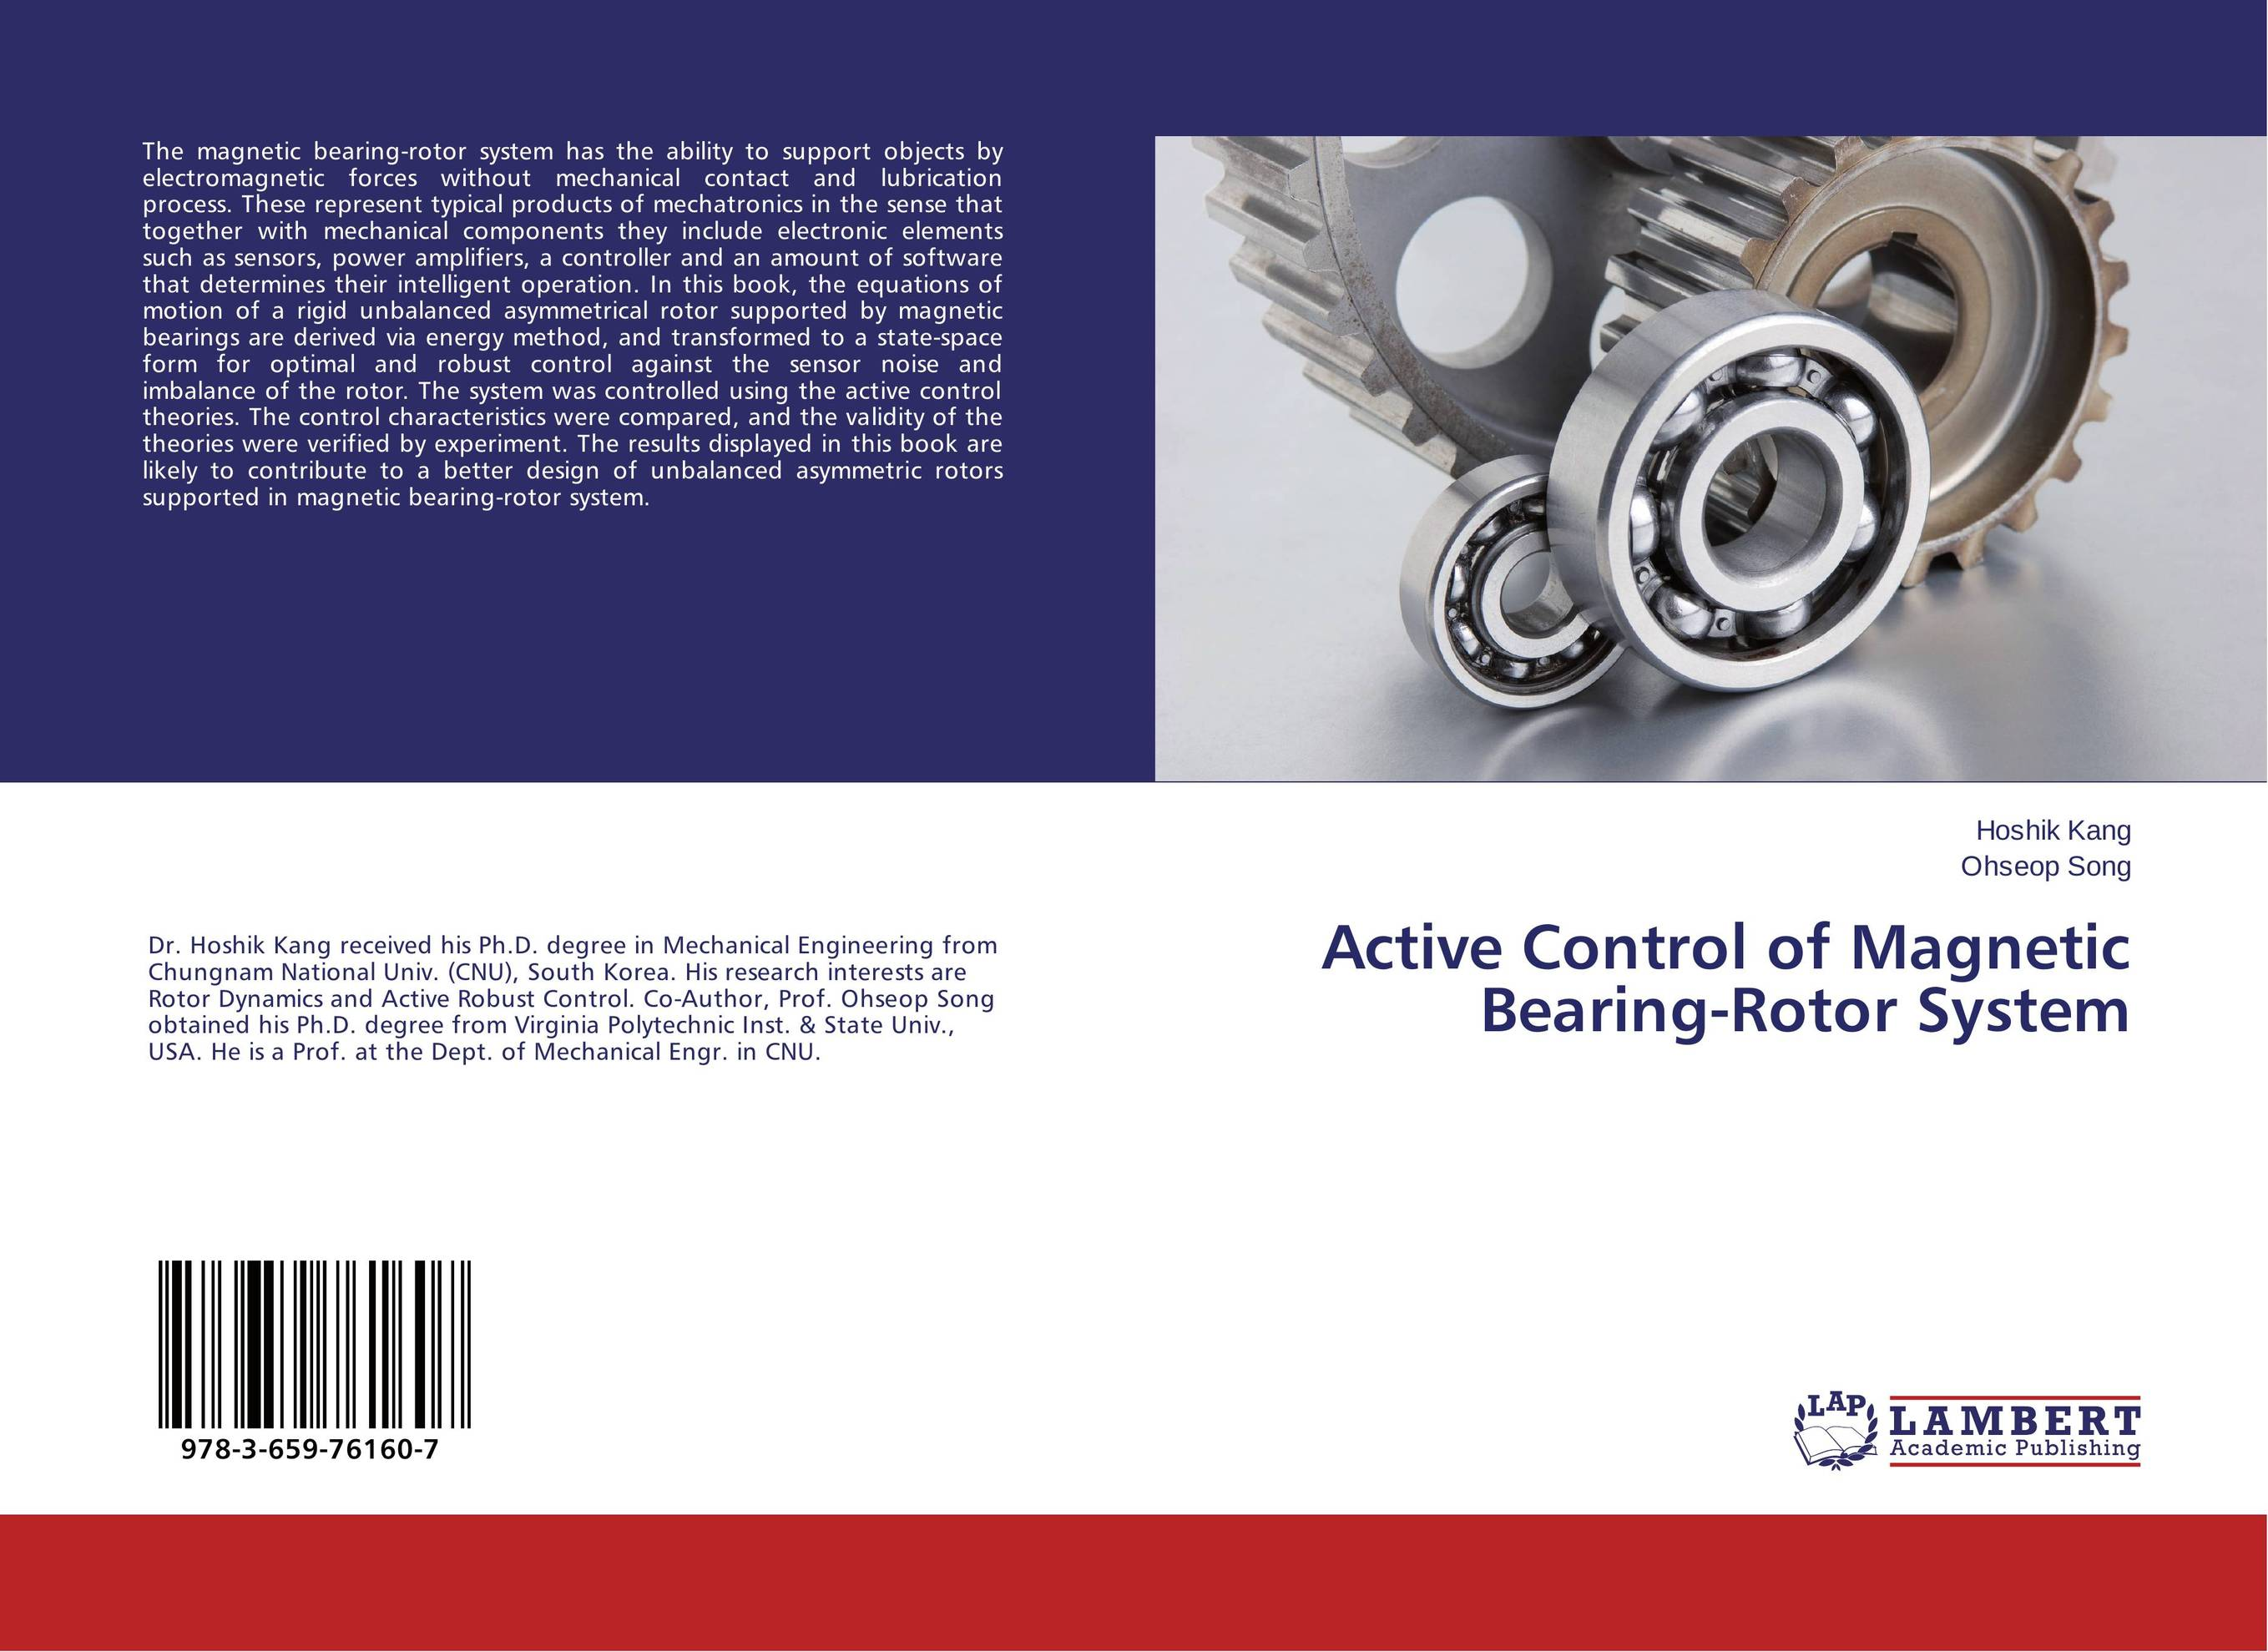 Active Control of Magnetic Bearing-Rotor System robust control algorithms for twin rotor system